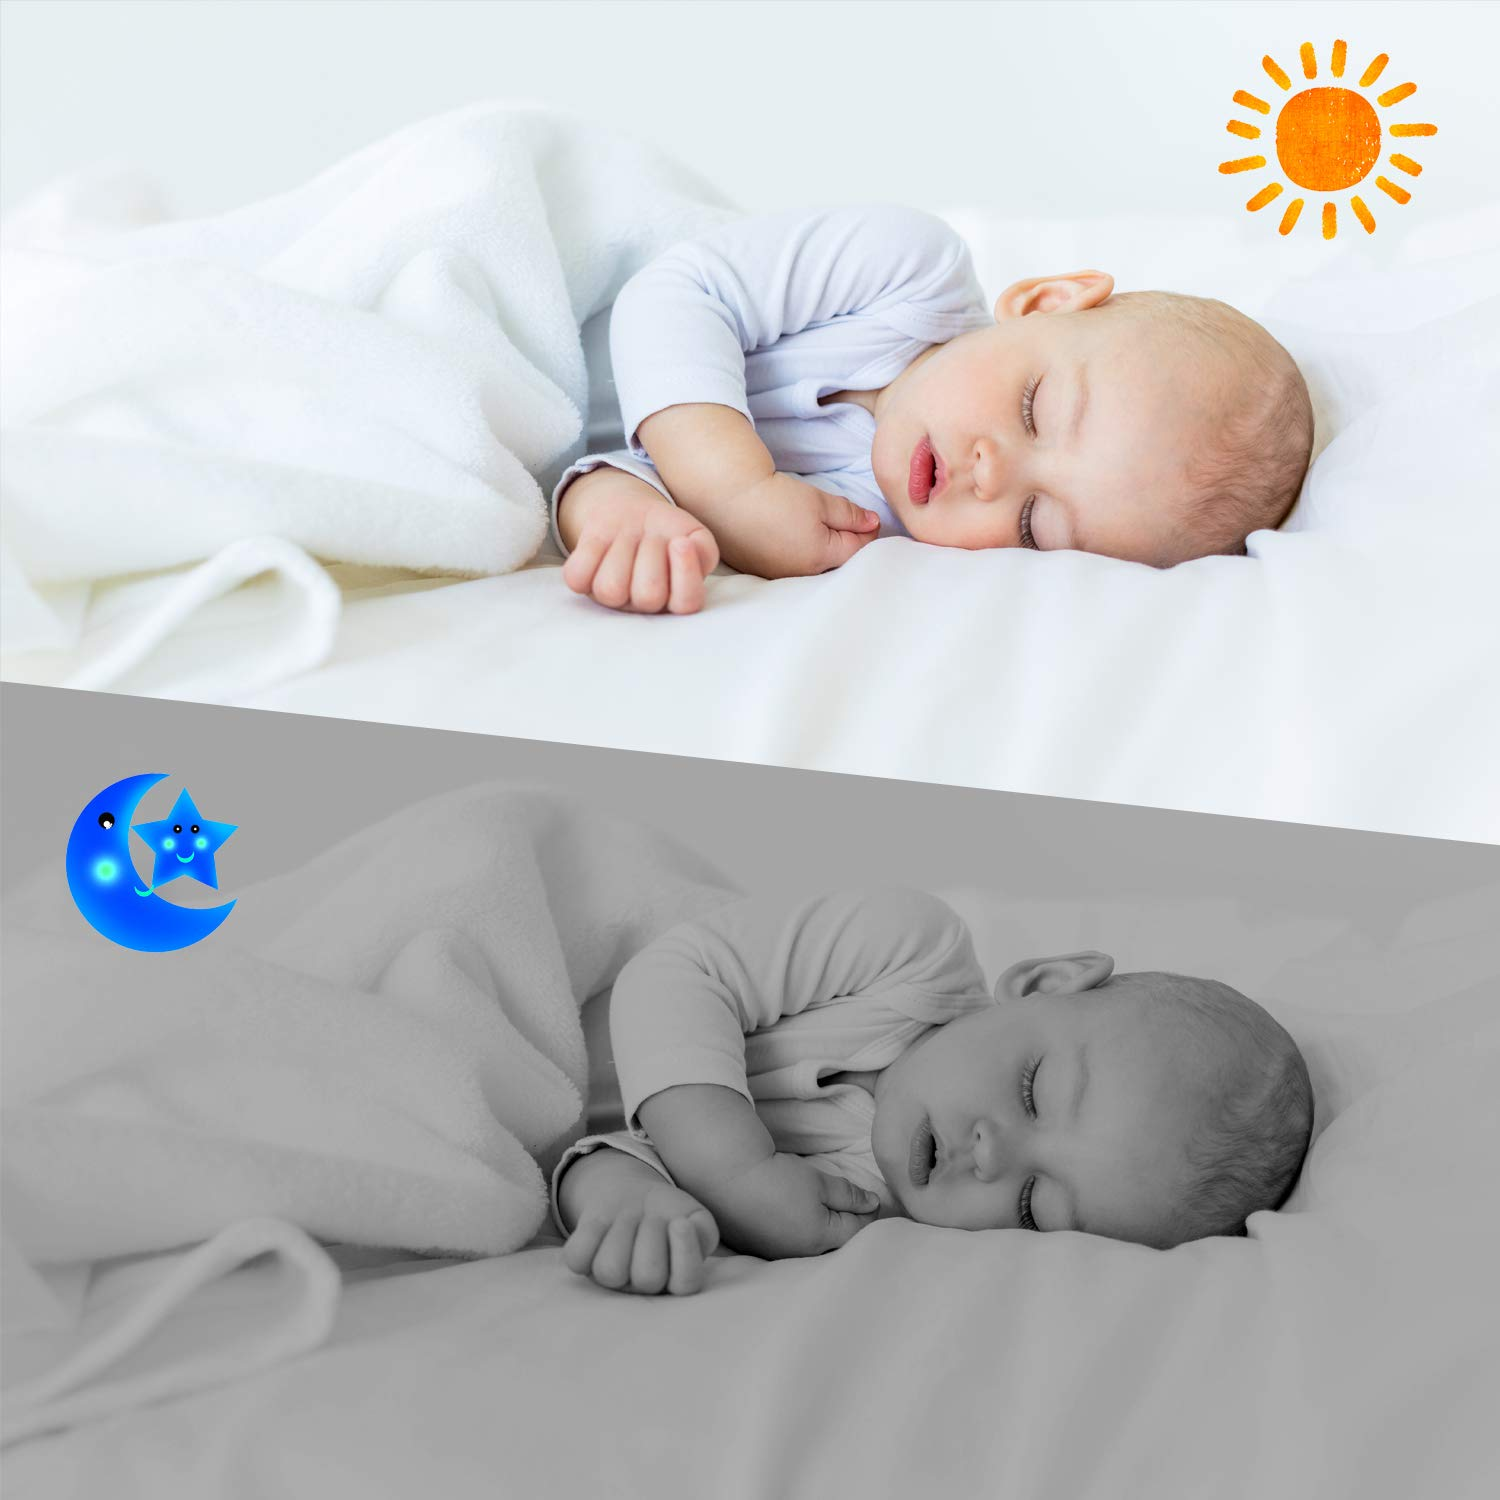 VOX Mode Infrared Night Vision Built-in Lullabies Two Way Talk Long Range and Temperature Monitoring HelloBaby Video Baby Monitor 3.2 LCD Display Screen with Camera